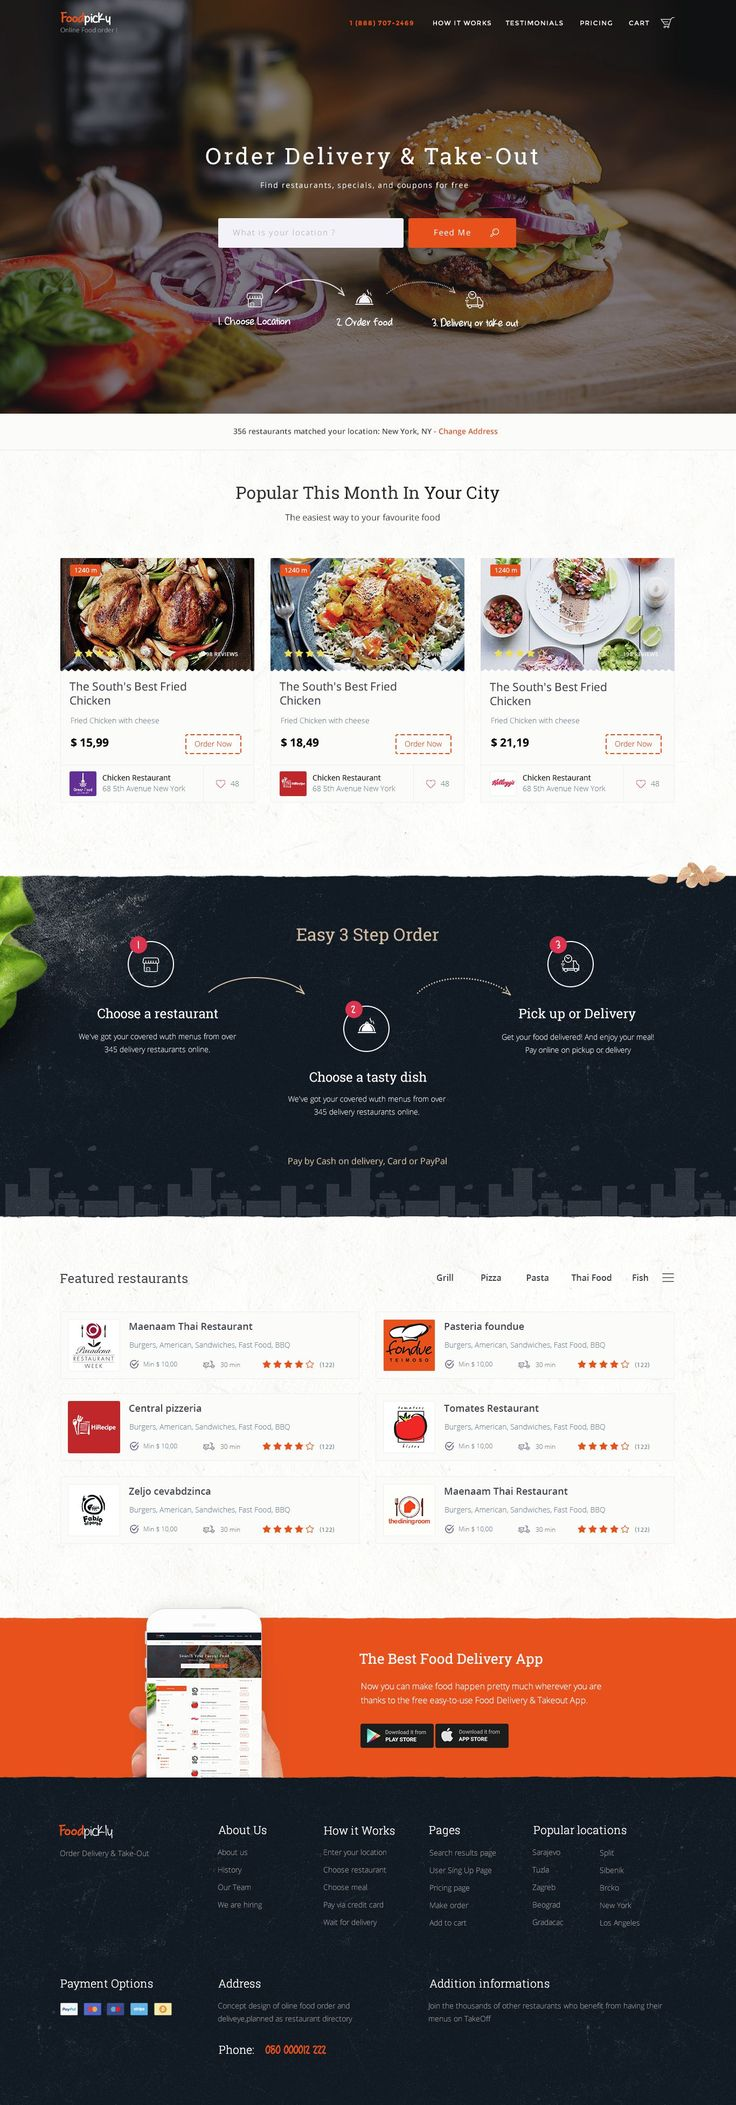 Foodpicky,online food ordering system for local restaurants. Browse local #restaurants delivery, menus, ratings and reviews, coupons and more. #website #template